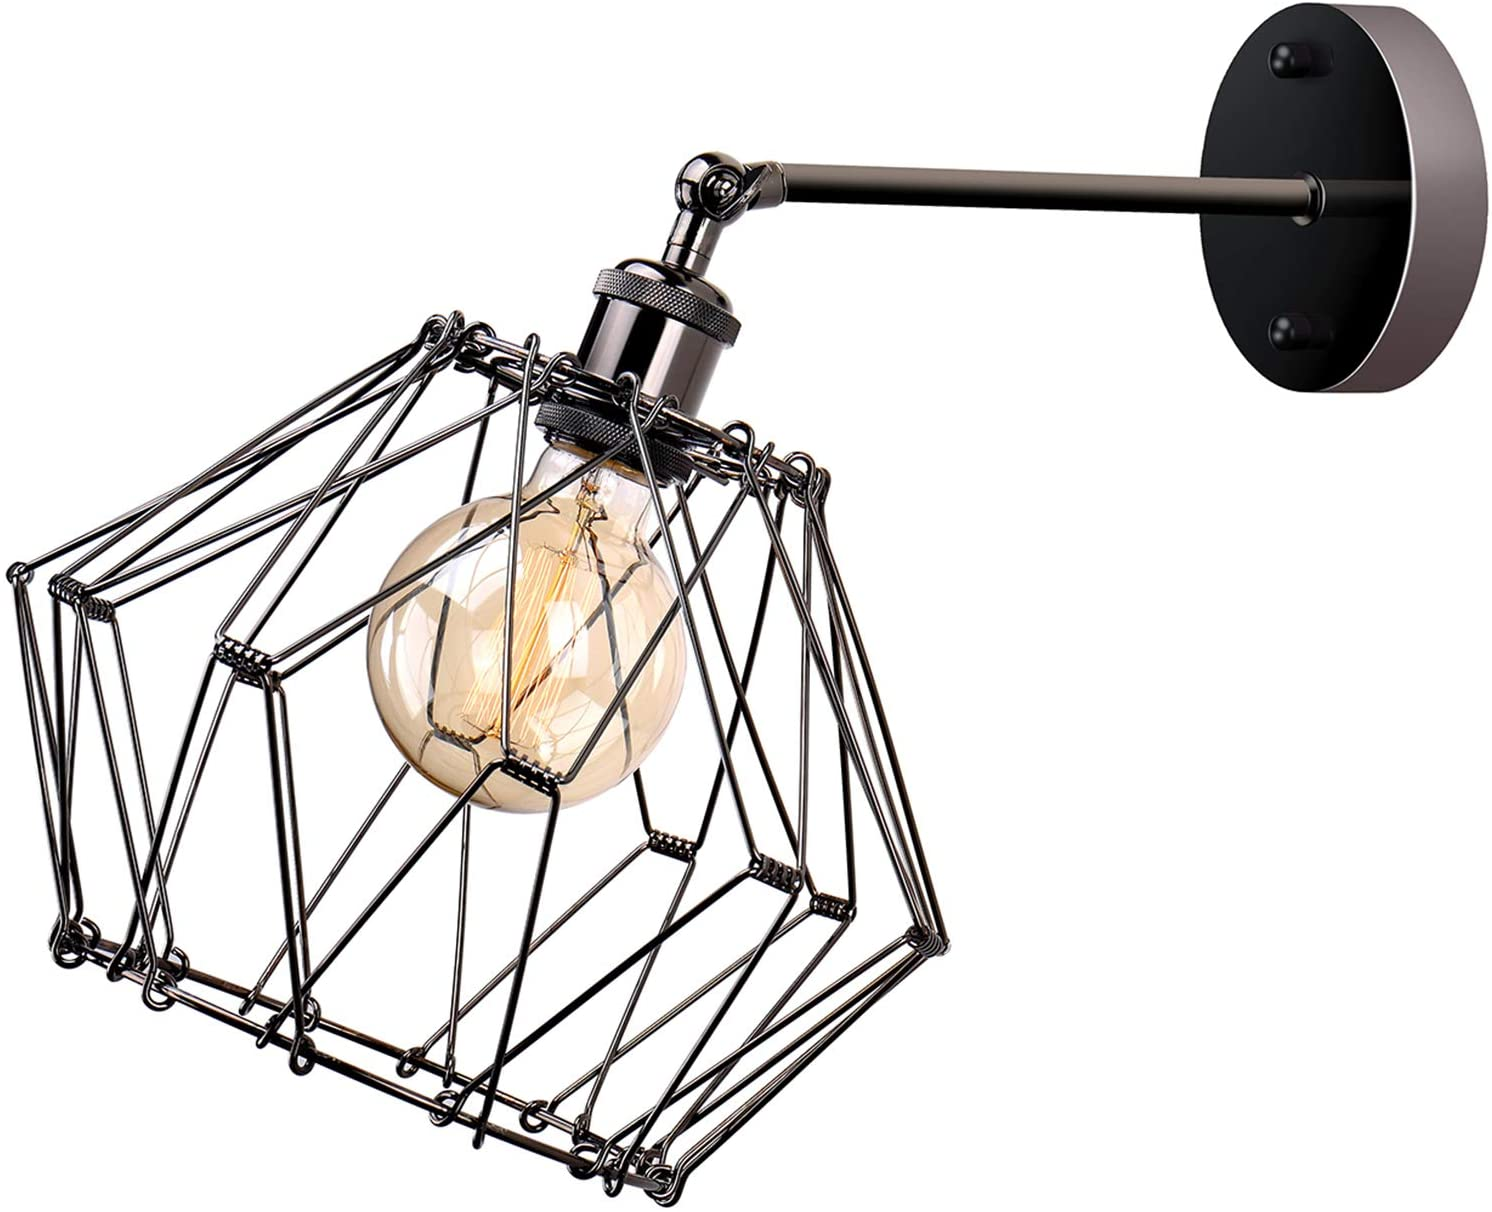 JIGUOOR Wire Cage Wall Sconce, Industrial Vintage Style Adjustable Shape Metal Lamp Guard Cage, Rustic Wall Lights Fixture for Home Decor, Bedroom, Farmhouse, Porch, Garage (1 Layer)